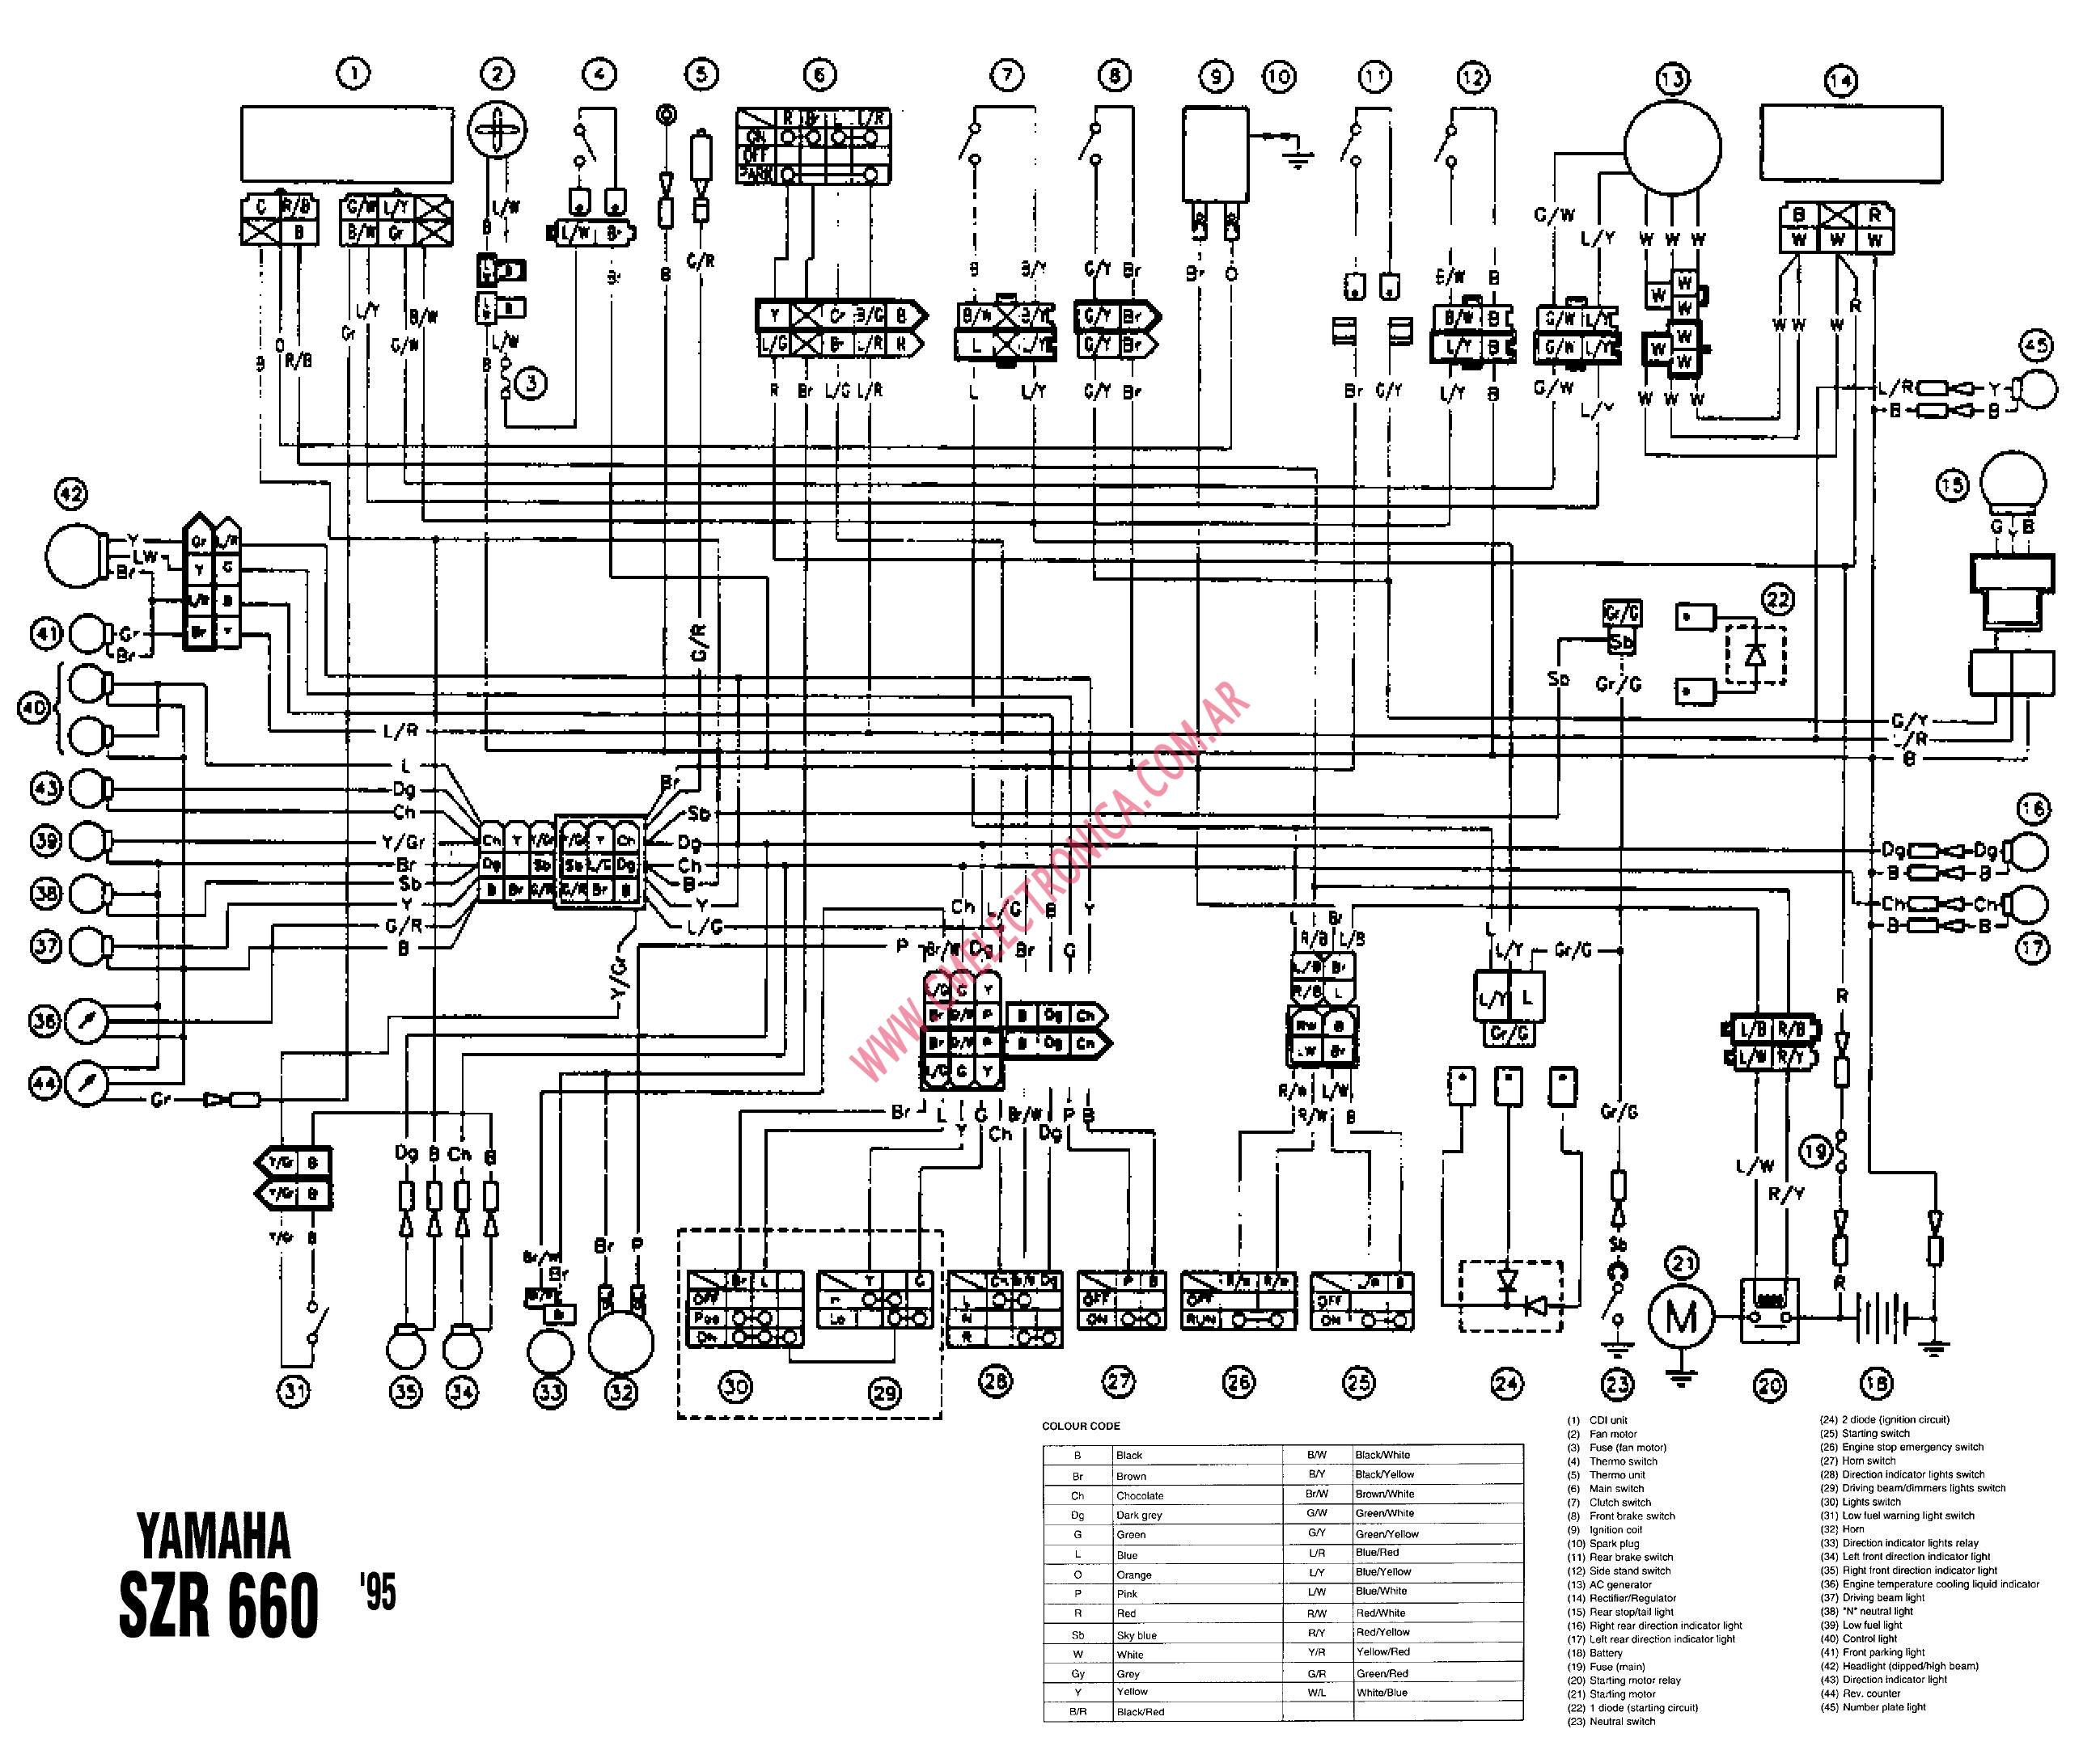 2002 Yamaha Grizzly 660 Wiring Diagram Diagram Base Website Wiring ... 2004 Yamaha Grizzly Wiring Diagram Diagram Base Website Full Edition - hyve-special